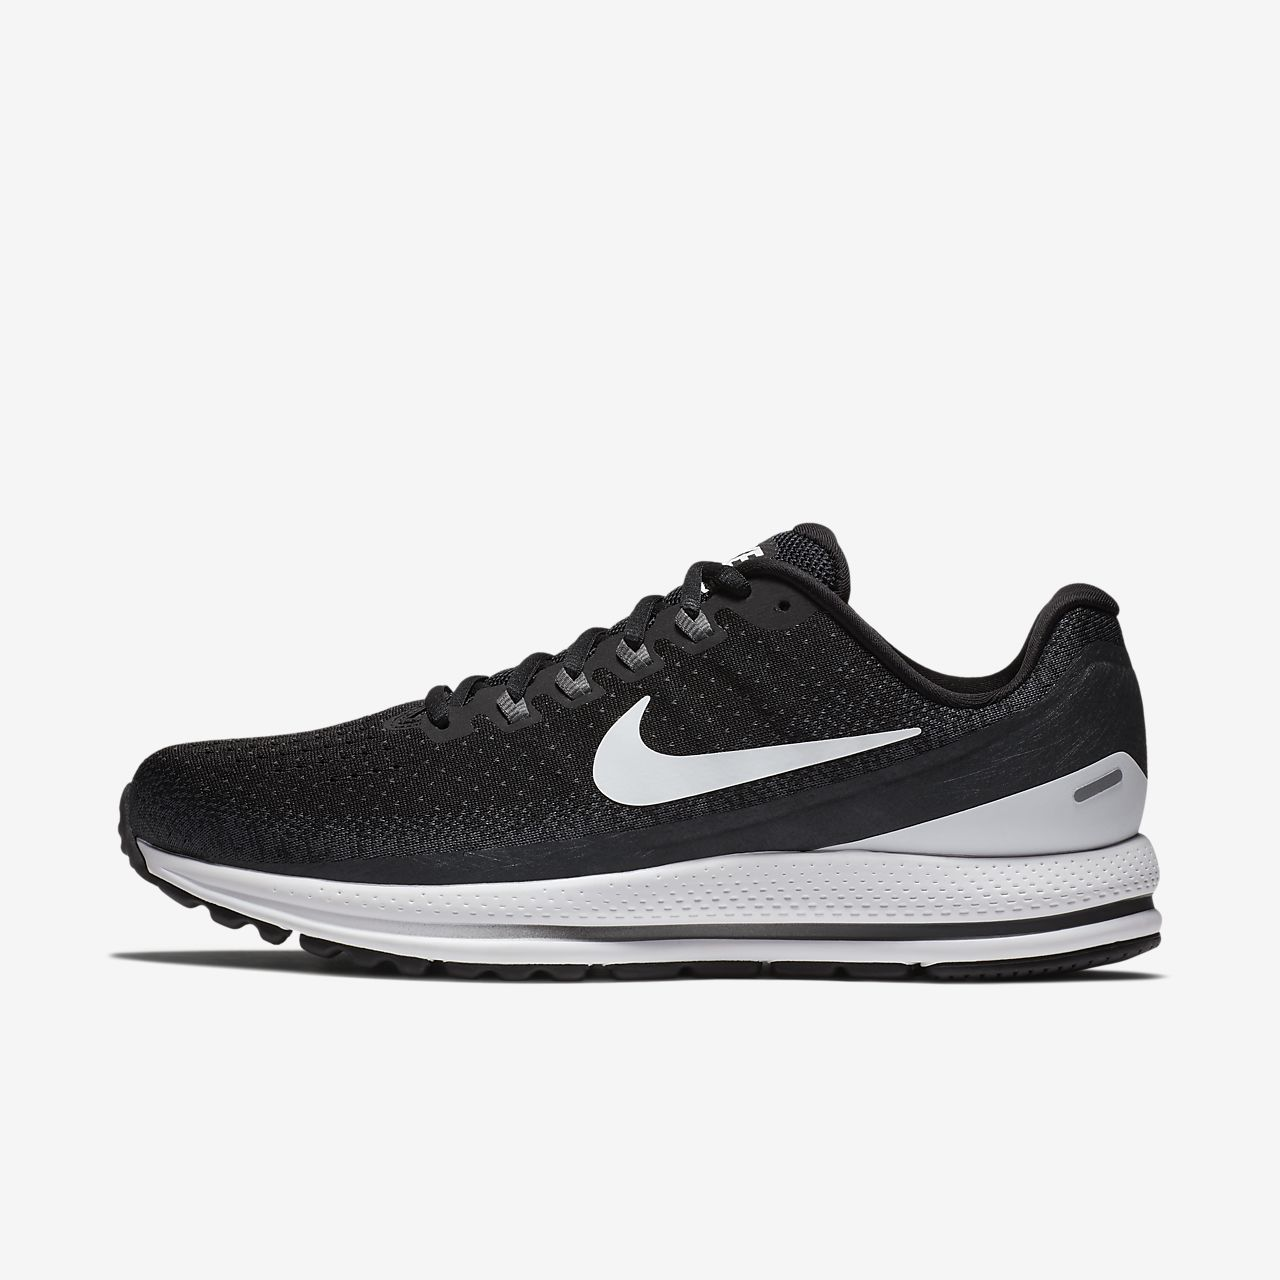 Nike Air Zoom Vomero Men's Running Shoes